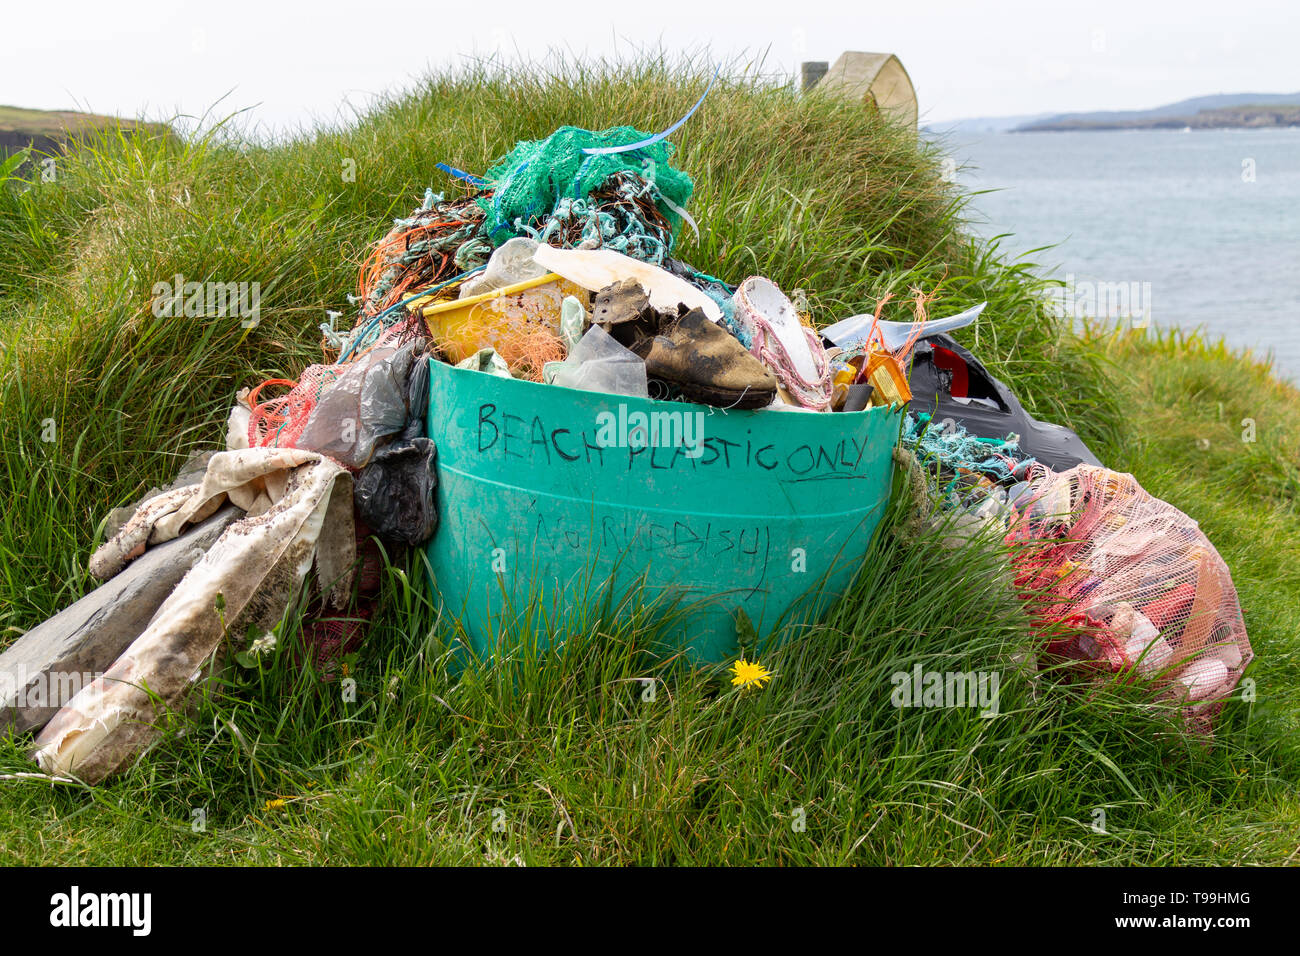 Bin full of plastic pollution collected from the beach - Stock Image